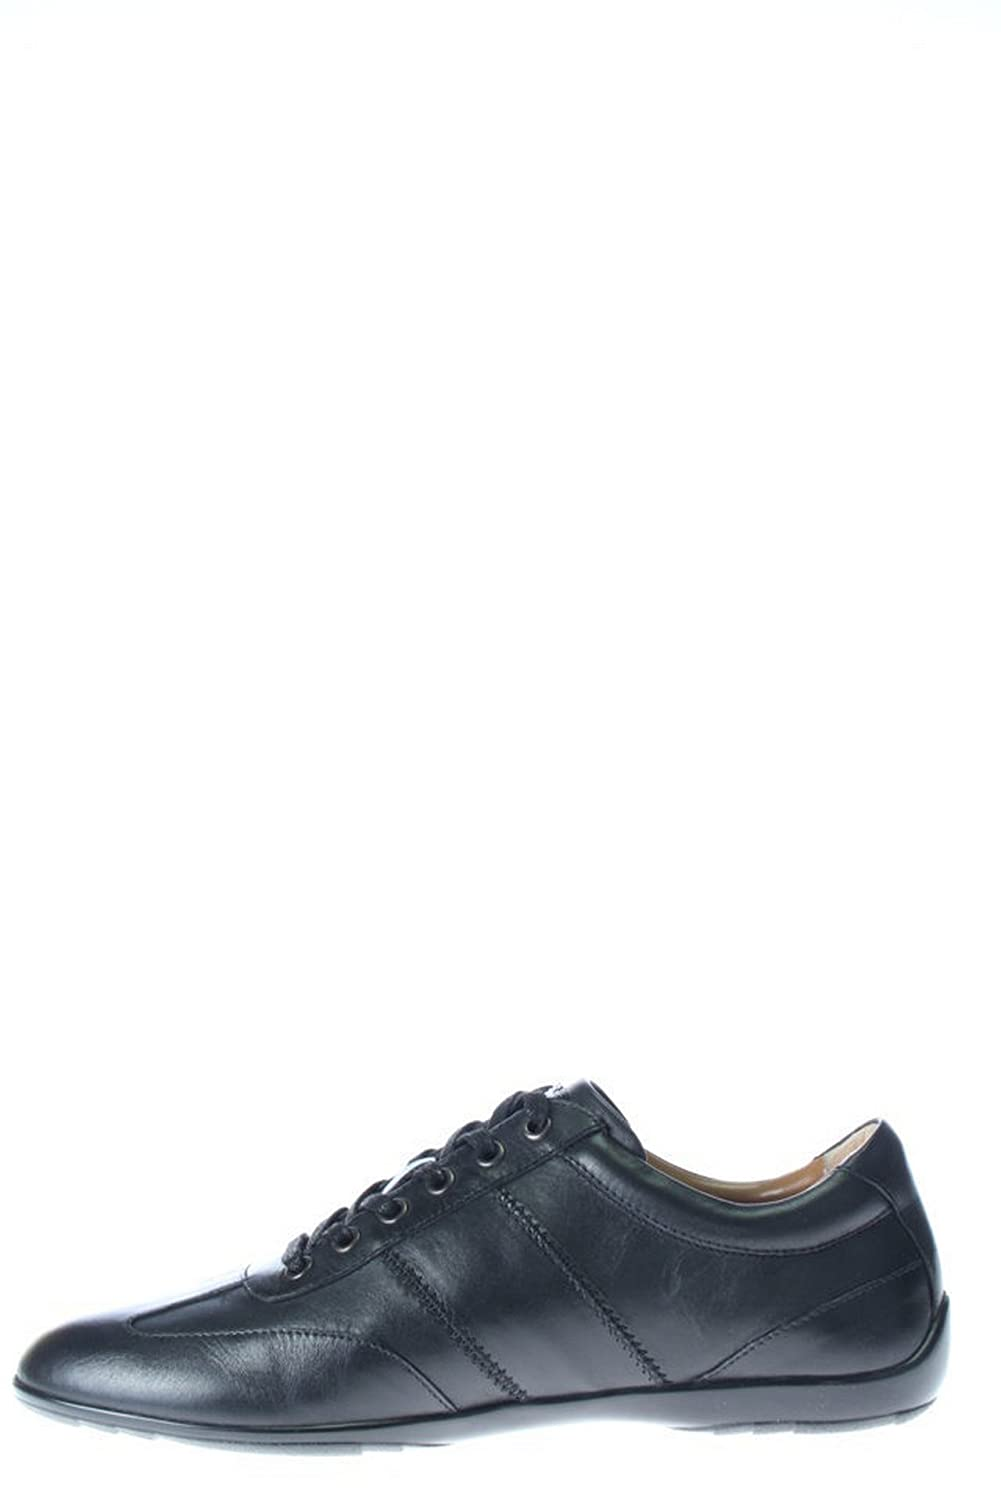 sports shoes 4bad9 f78fe Emporio Armani Armani Jeans 06534t4 Uomo Sneakers, Nero (nero), 40   Amazon.it  Scarpe e borse